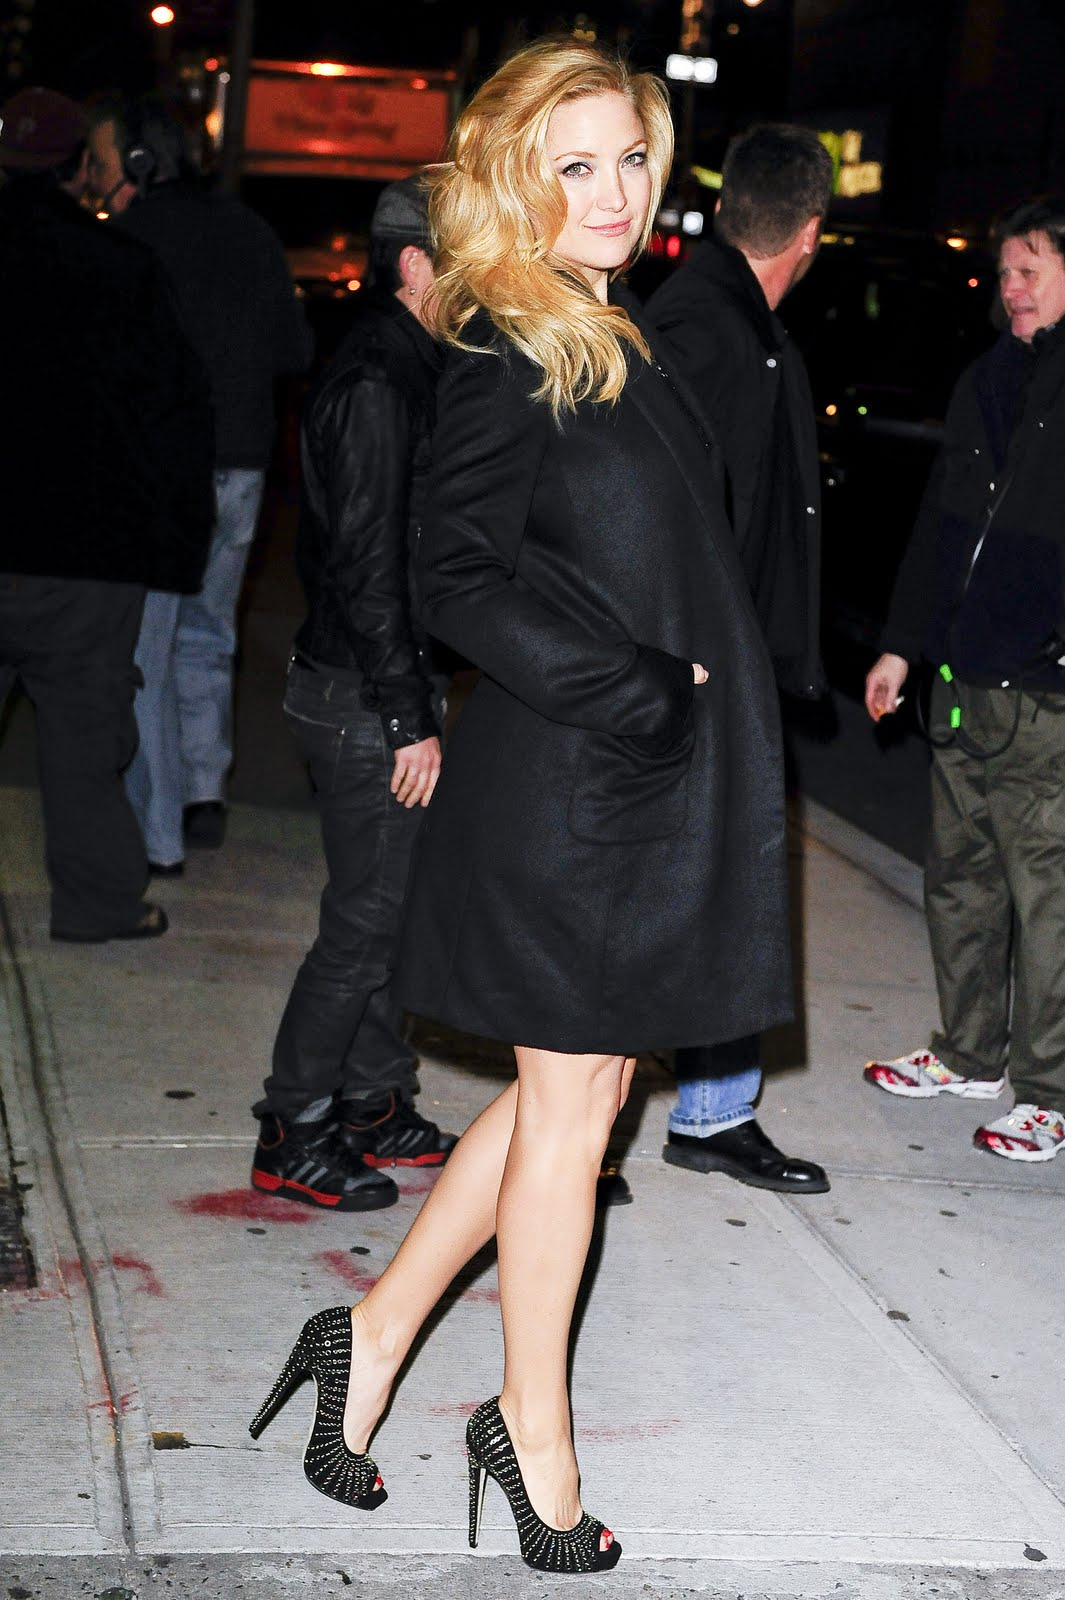 http://2.bp.blogspot.com/-Hd6MD75r0xE/TfzVoEg8DgI/AAAAAAAADhc/l3w7I0XFNJY/s1600/kate_hudson_visits__late_show_with_david_letterman1.jpg